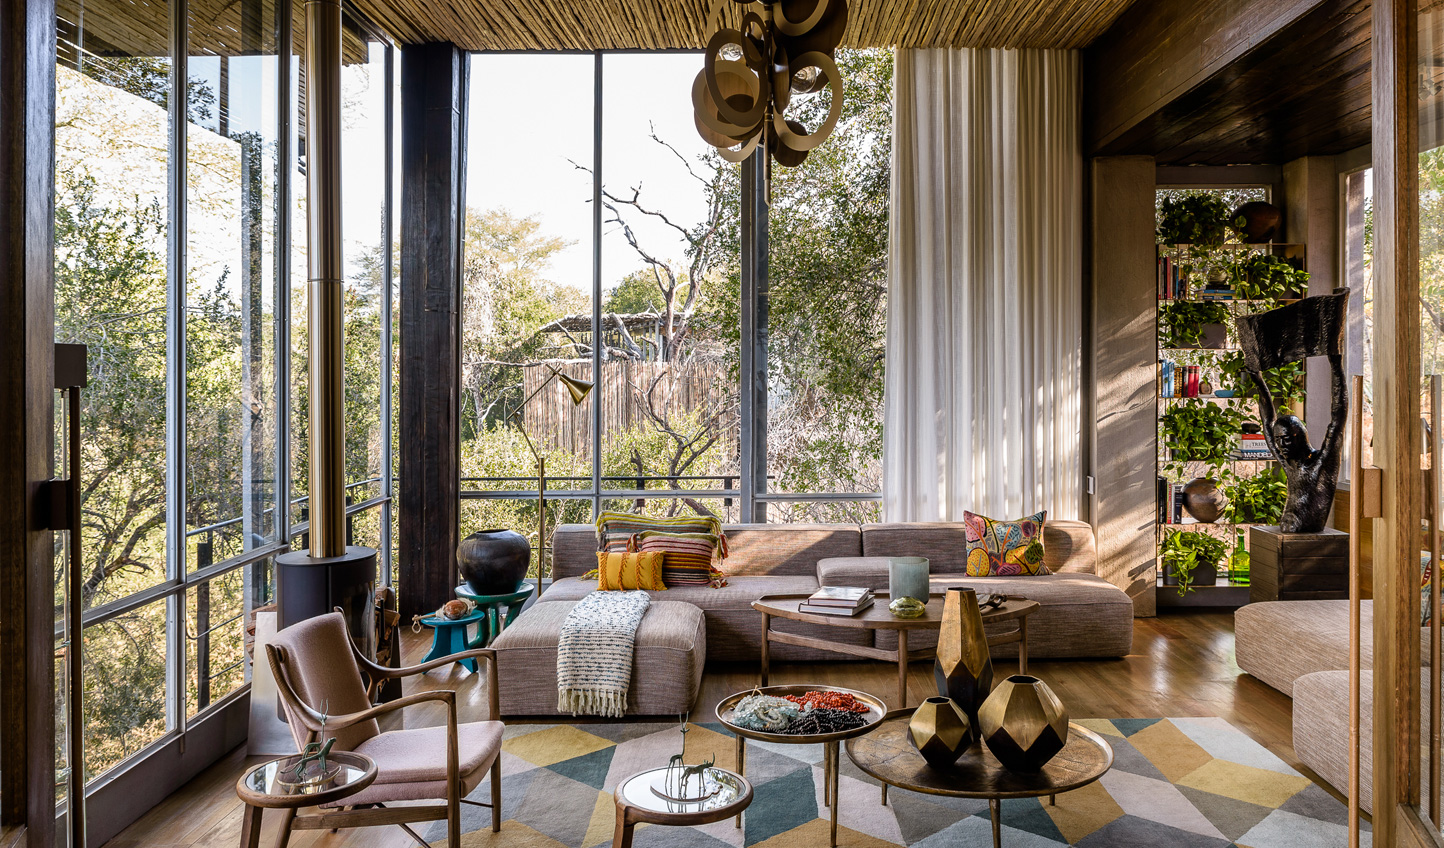 Contemporary design cut through with African hues